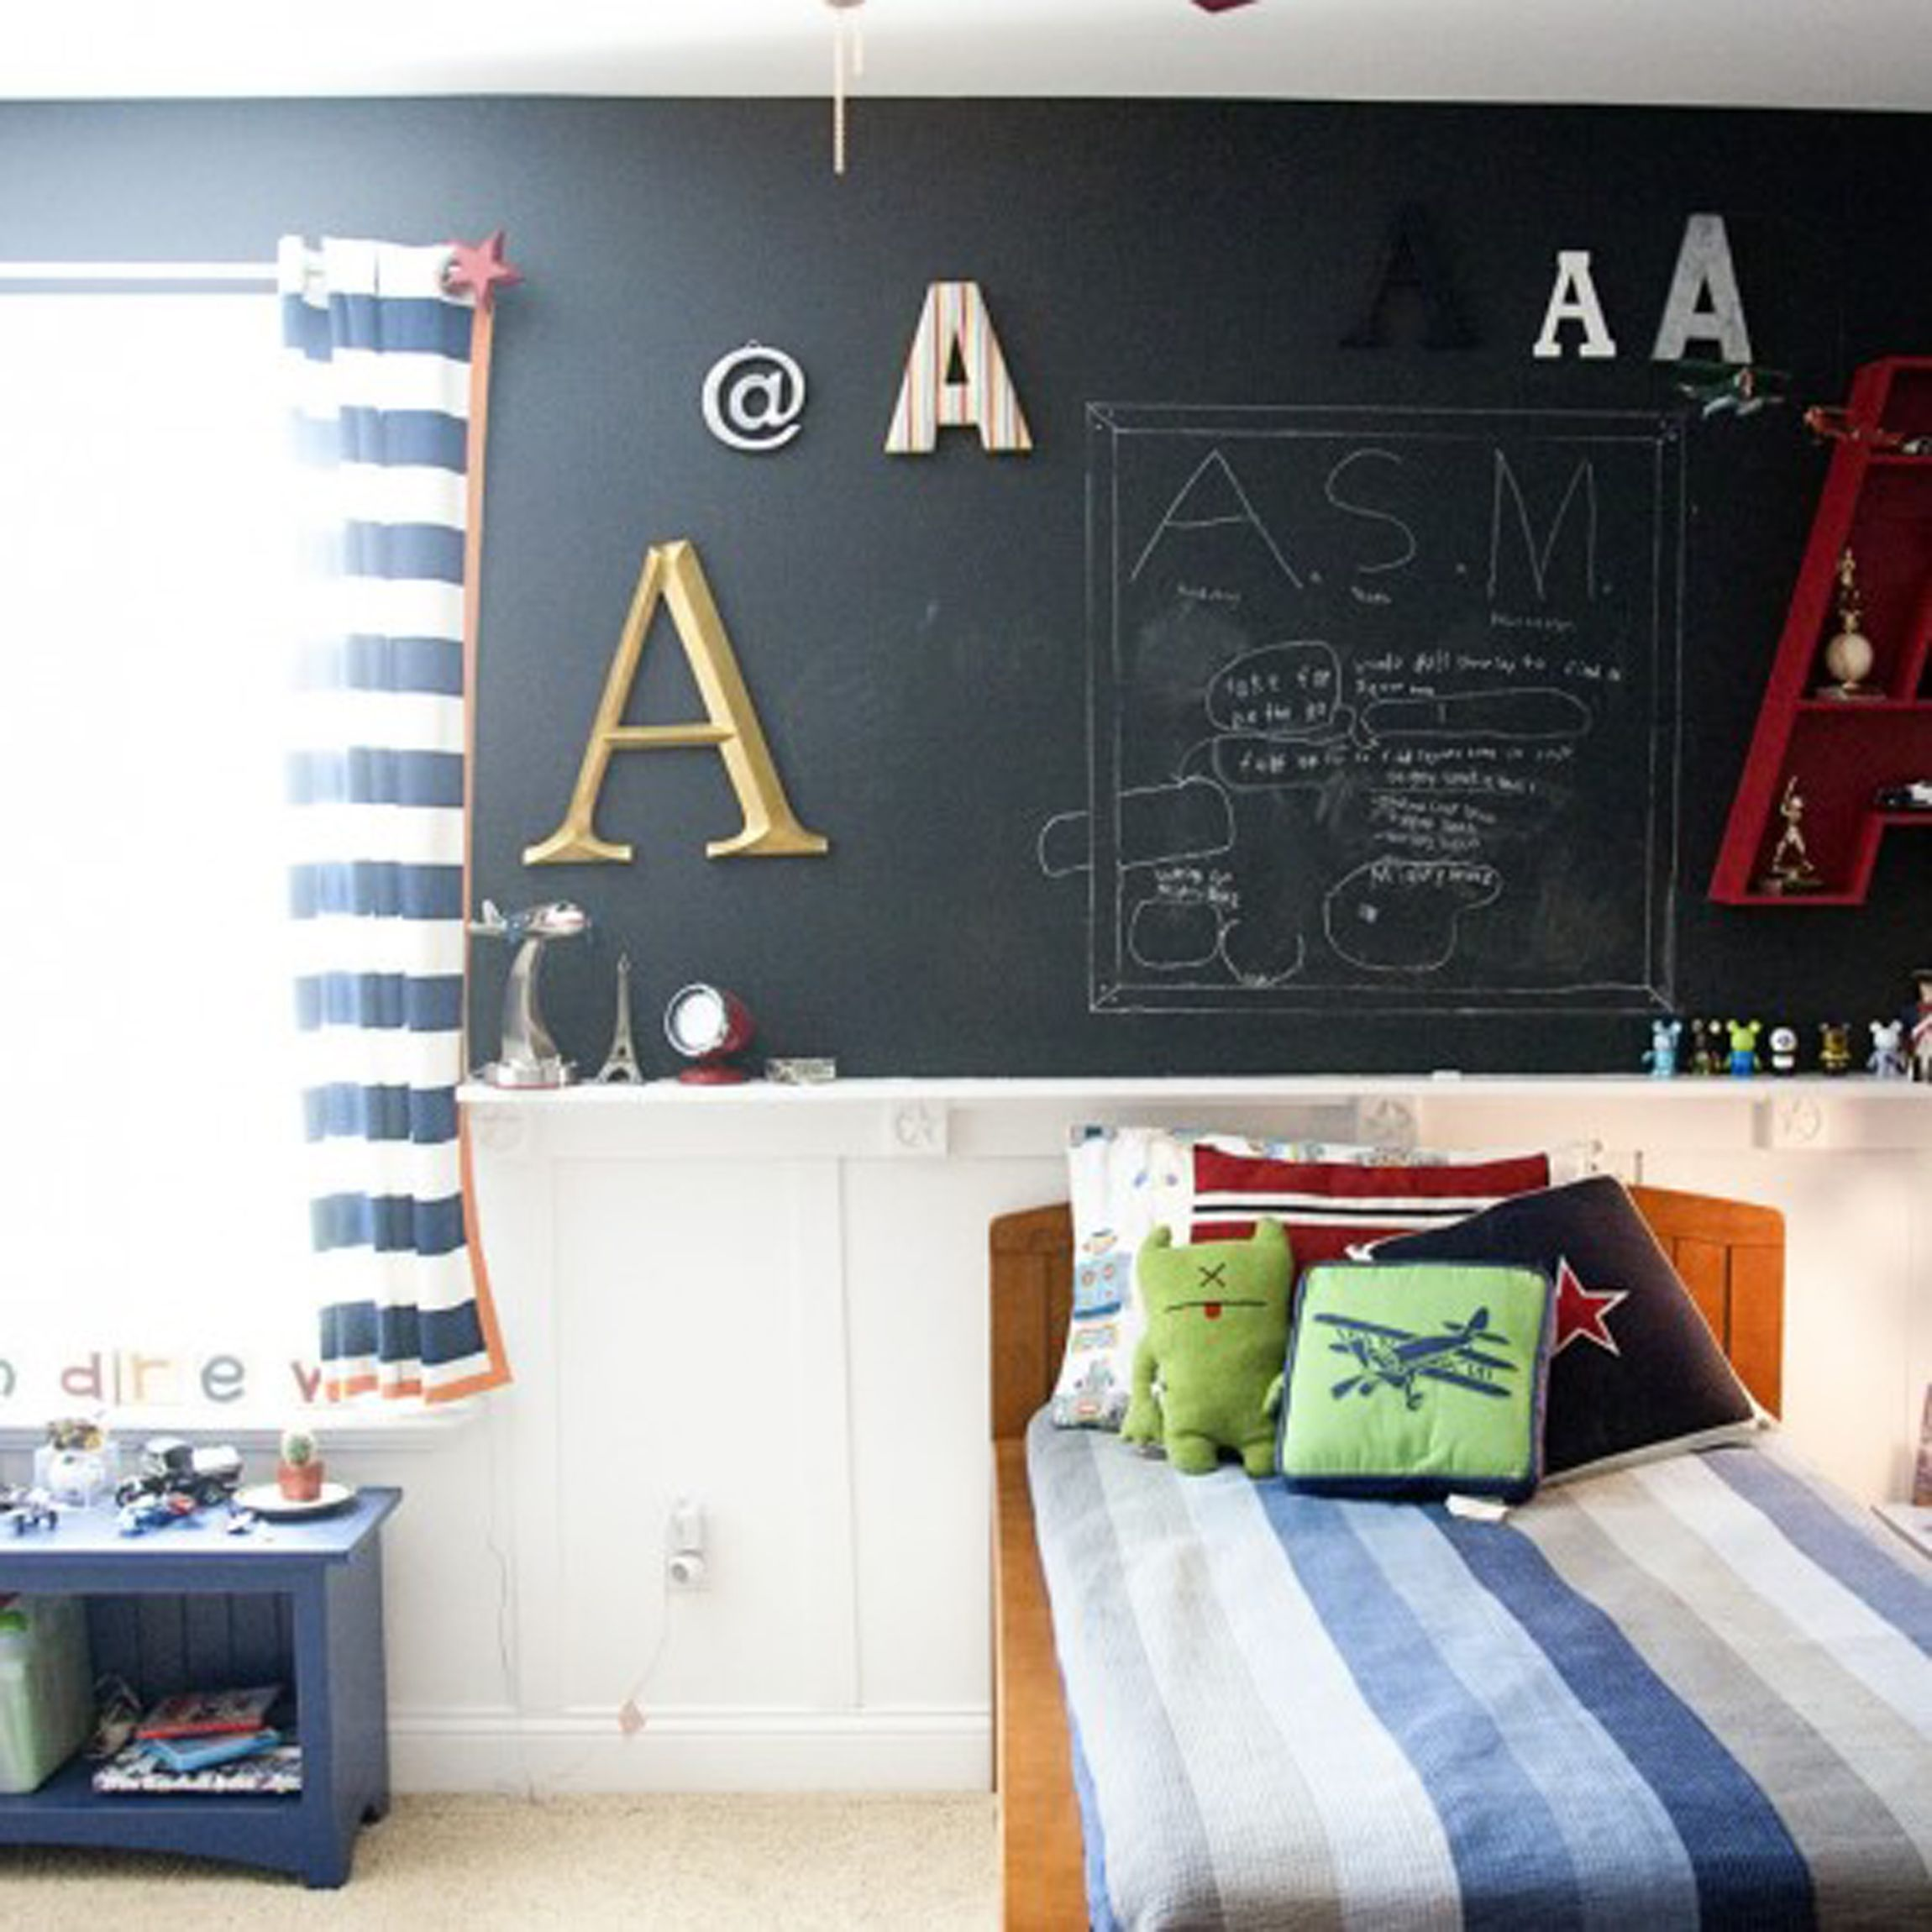 Bedroom Chalkboard Decoration For Kids Room With Nice Wall Alphabet Letter Design Plus Endearing Walnut Bed